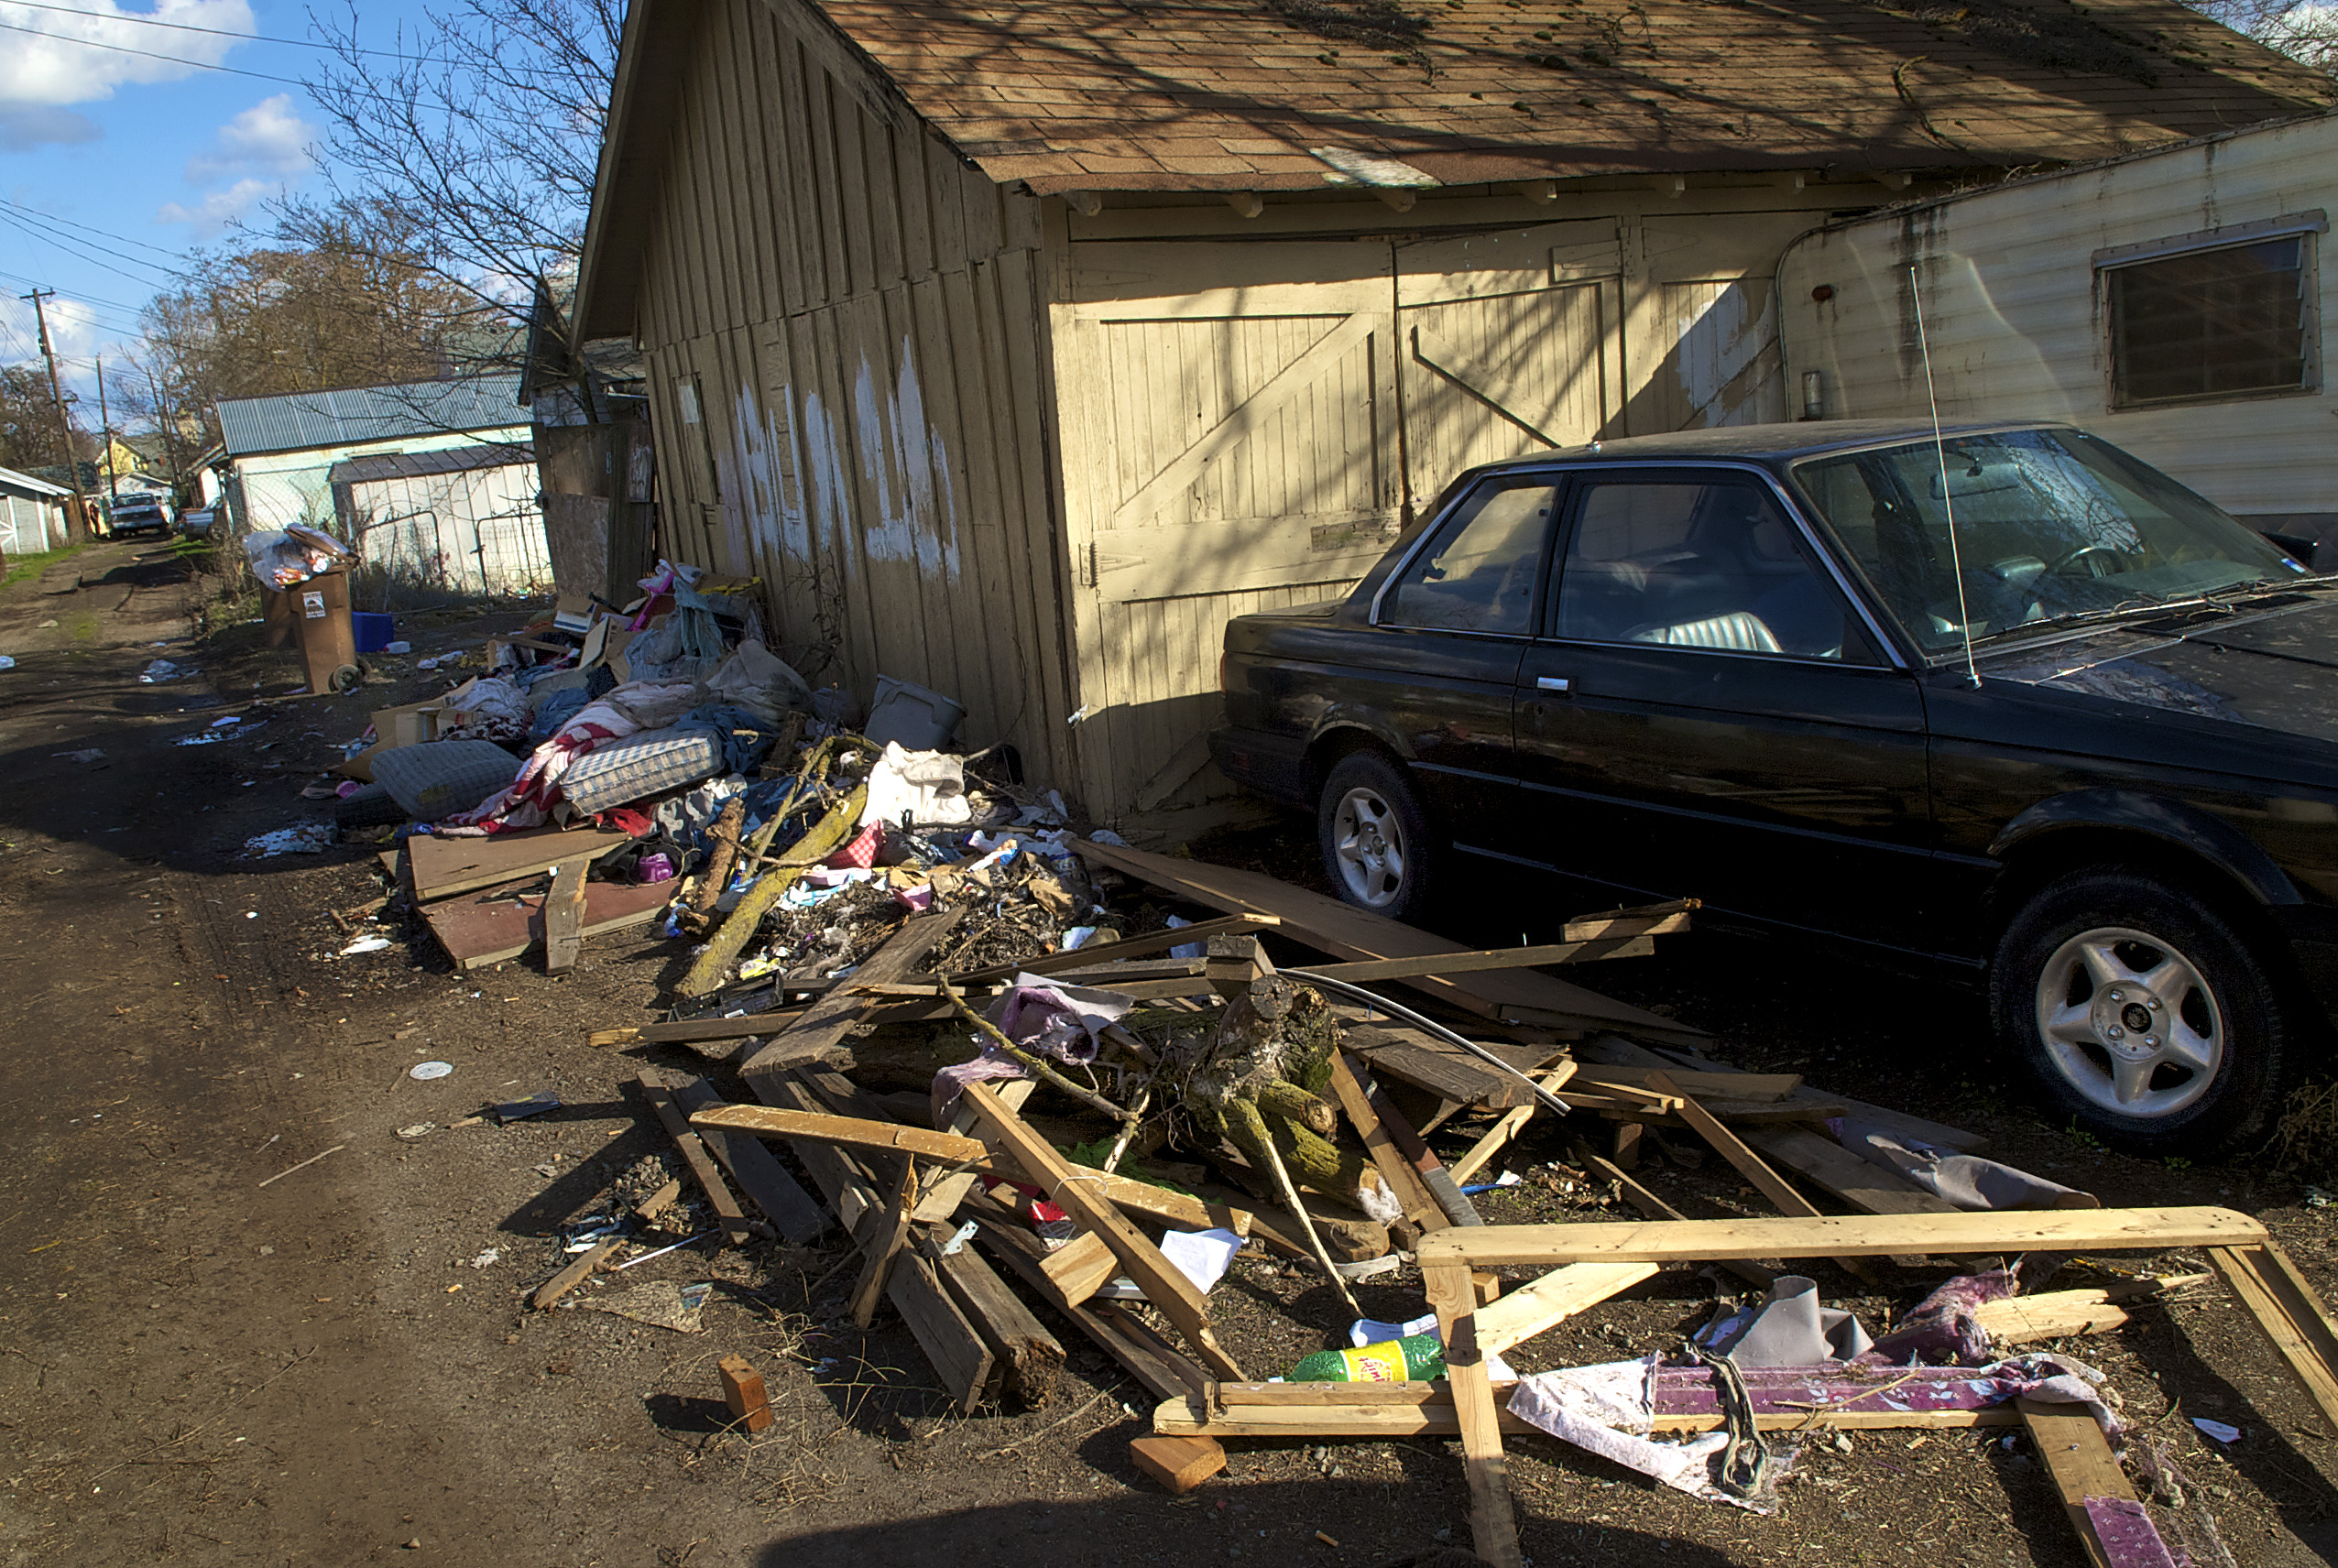 City fees jump for trash, other code violations | The Spokesman-Review